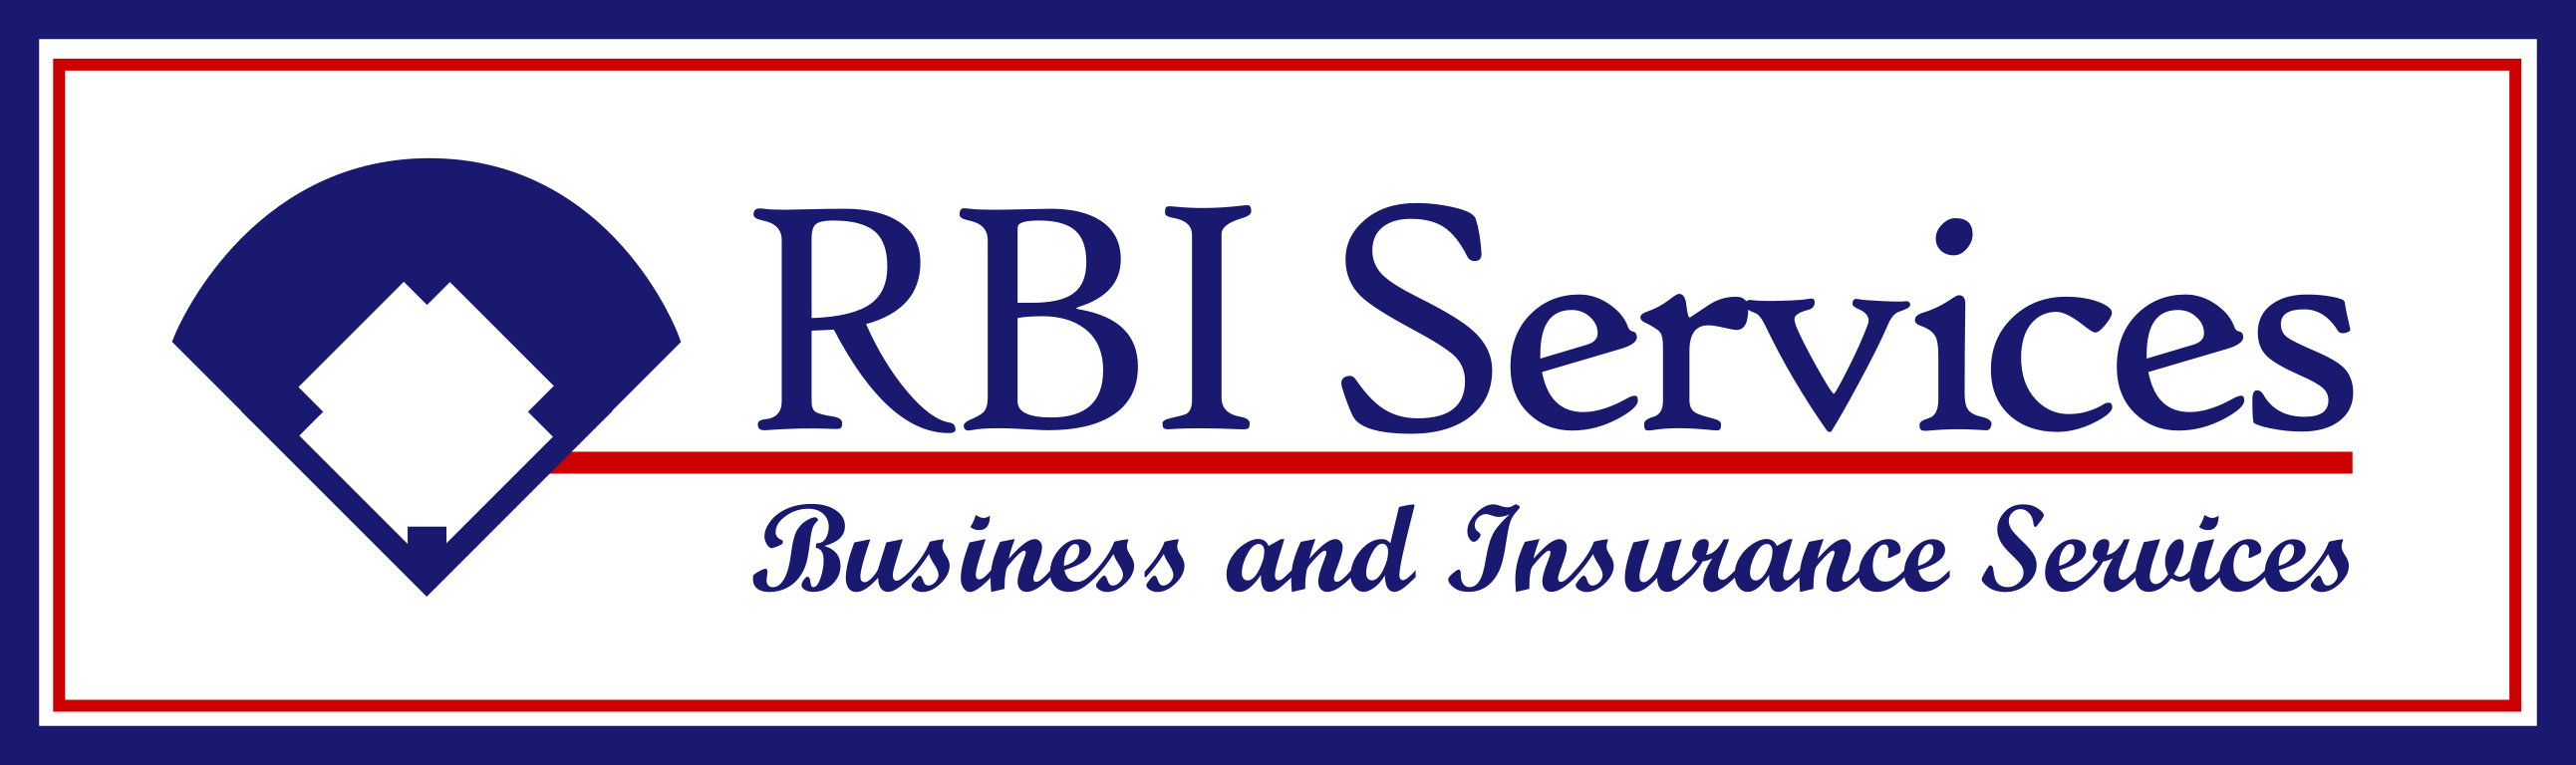 RBI-Services-Main-Logo-w-Border